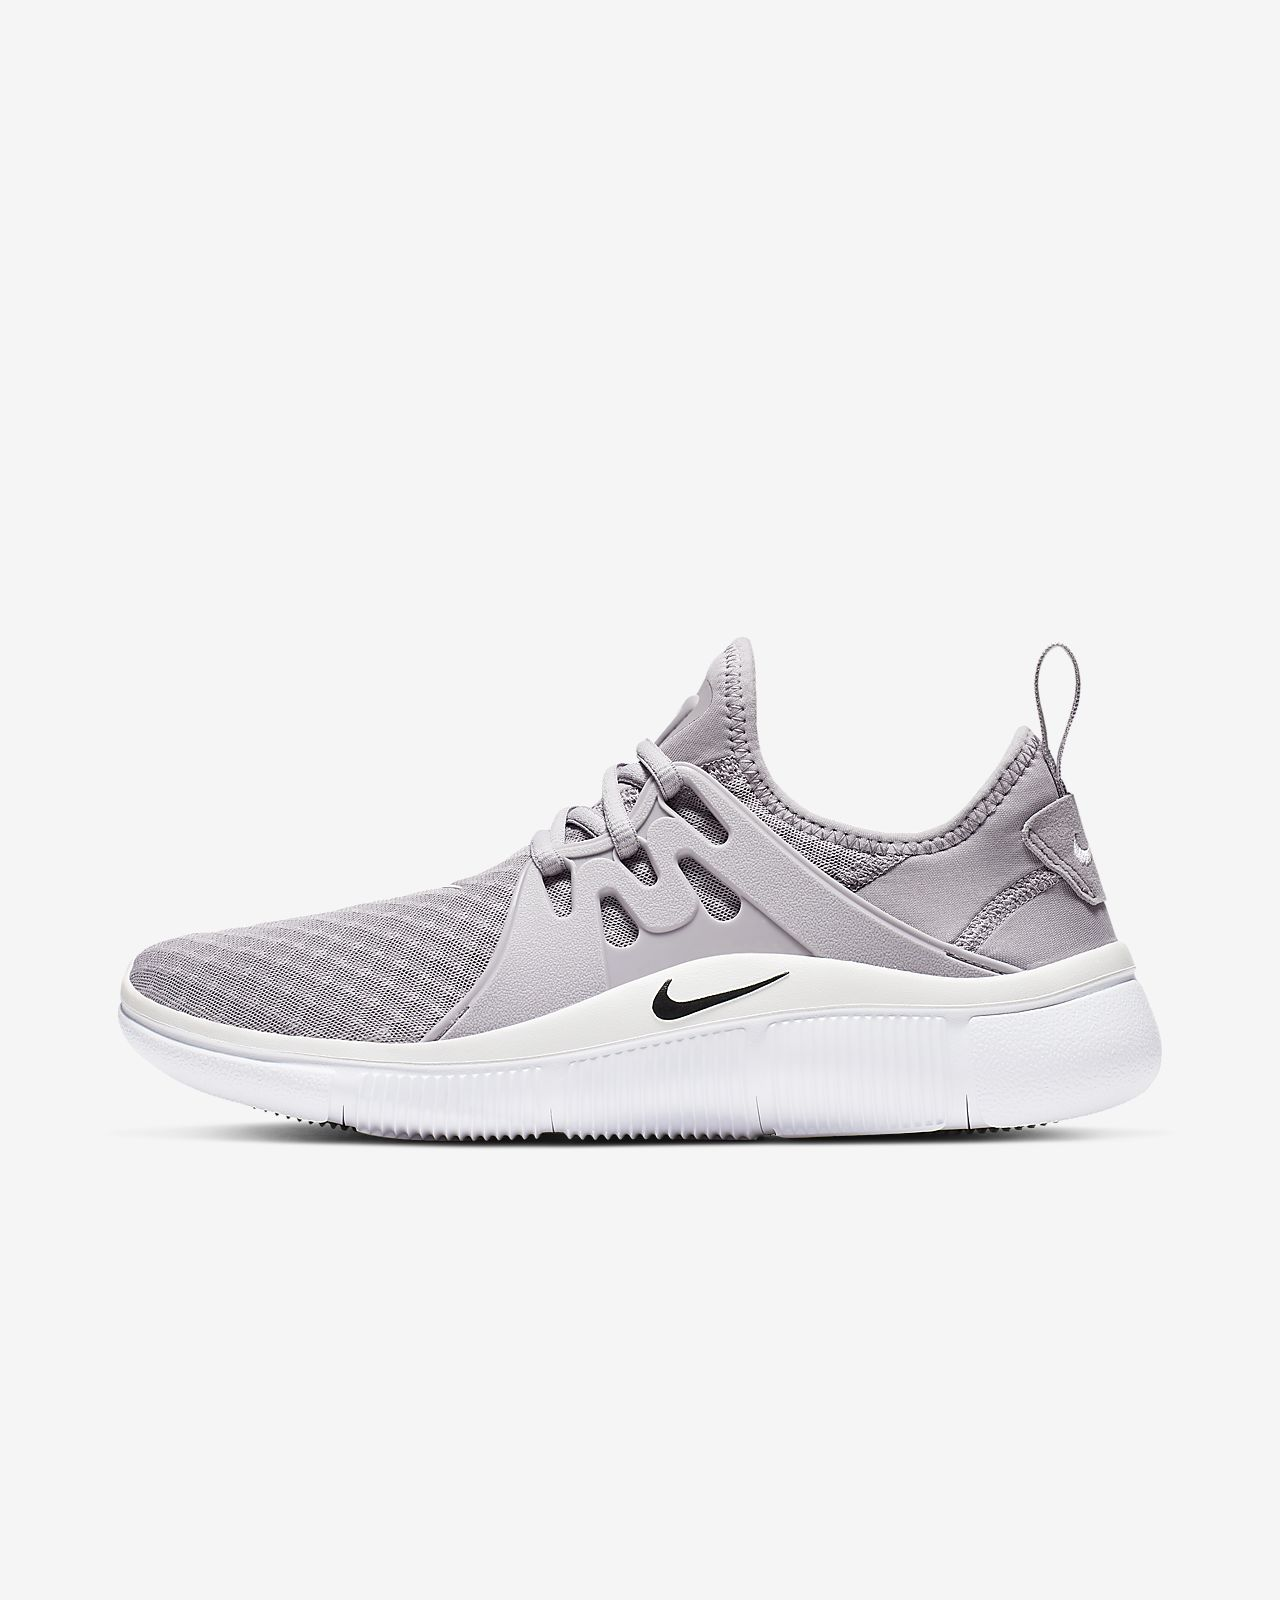 Nike Acalme Men's Shoe